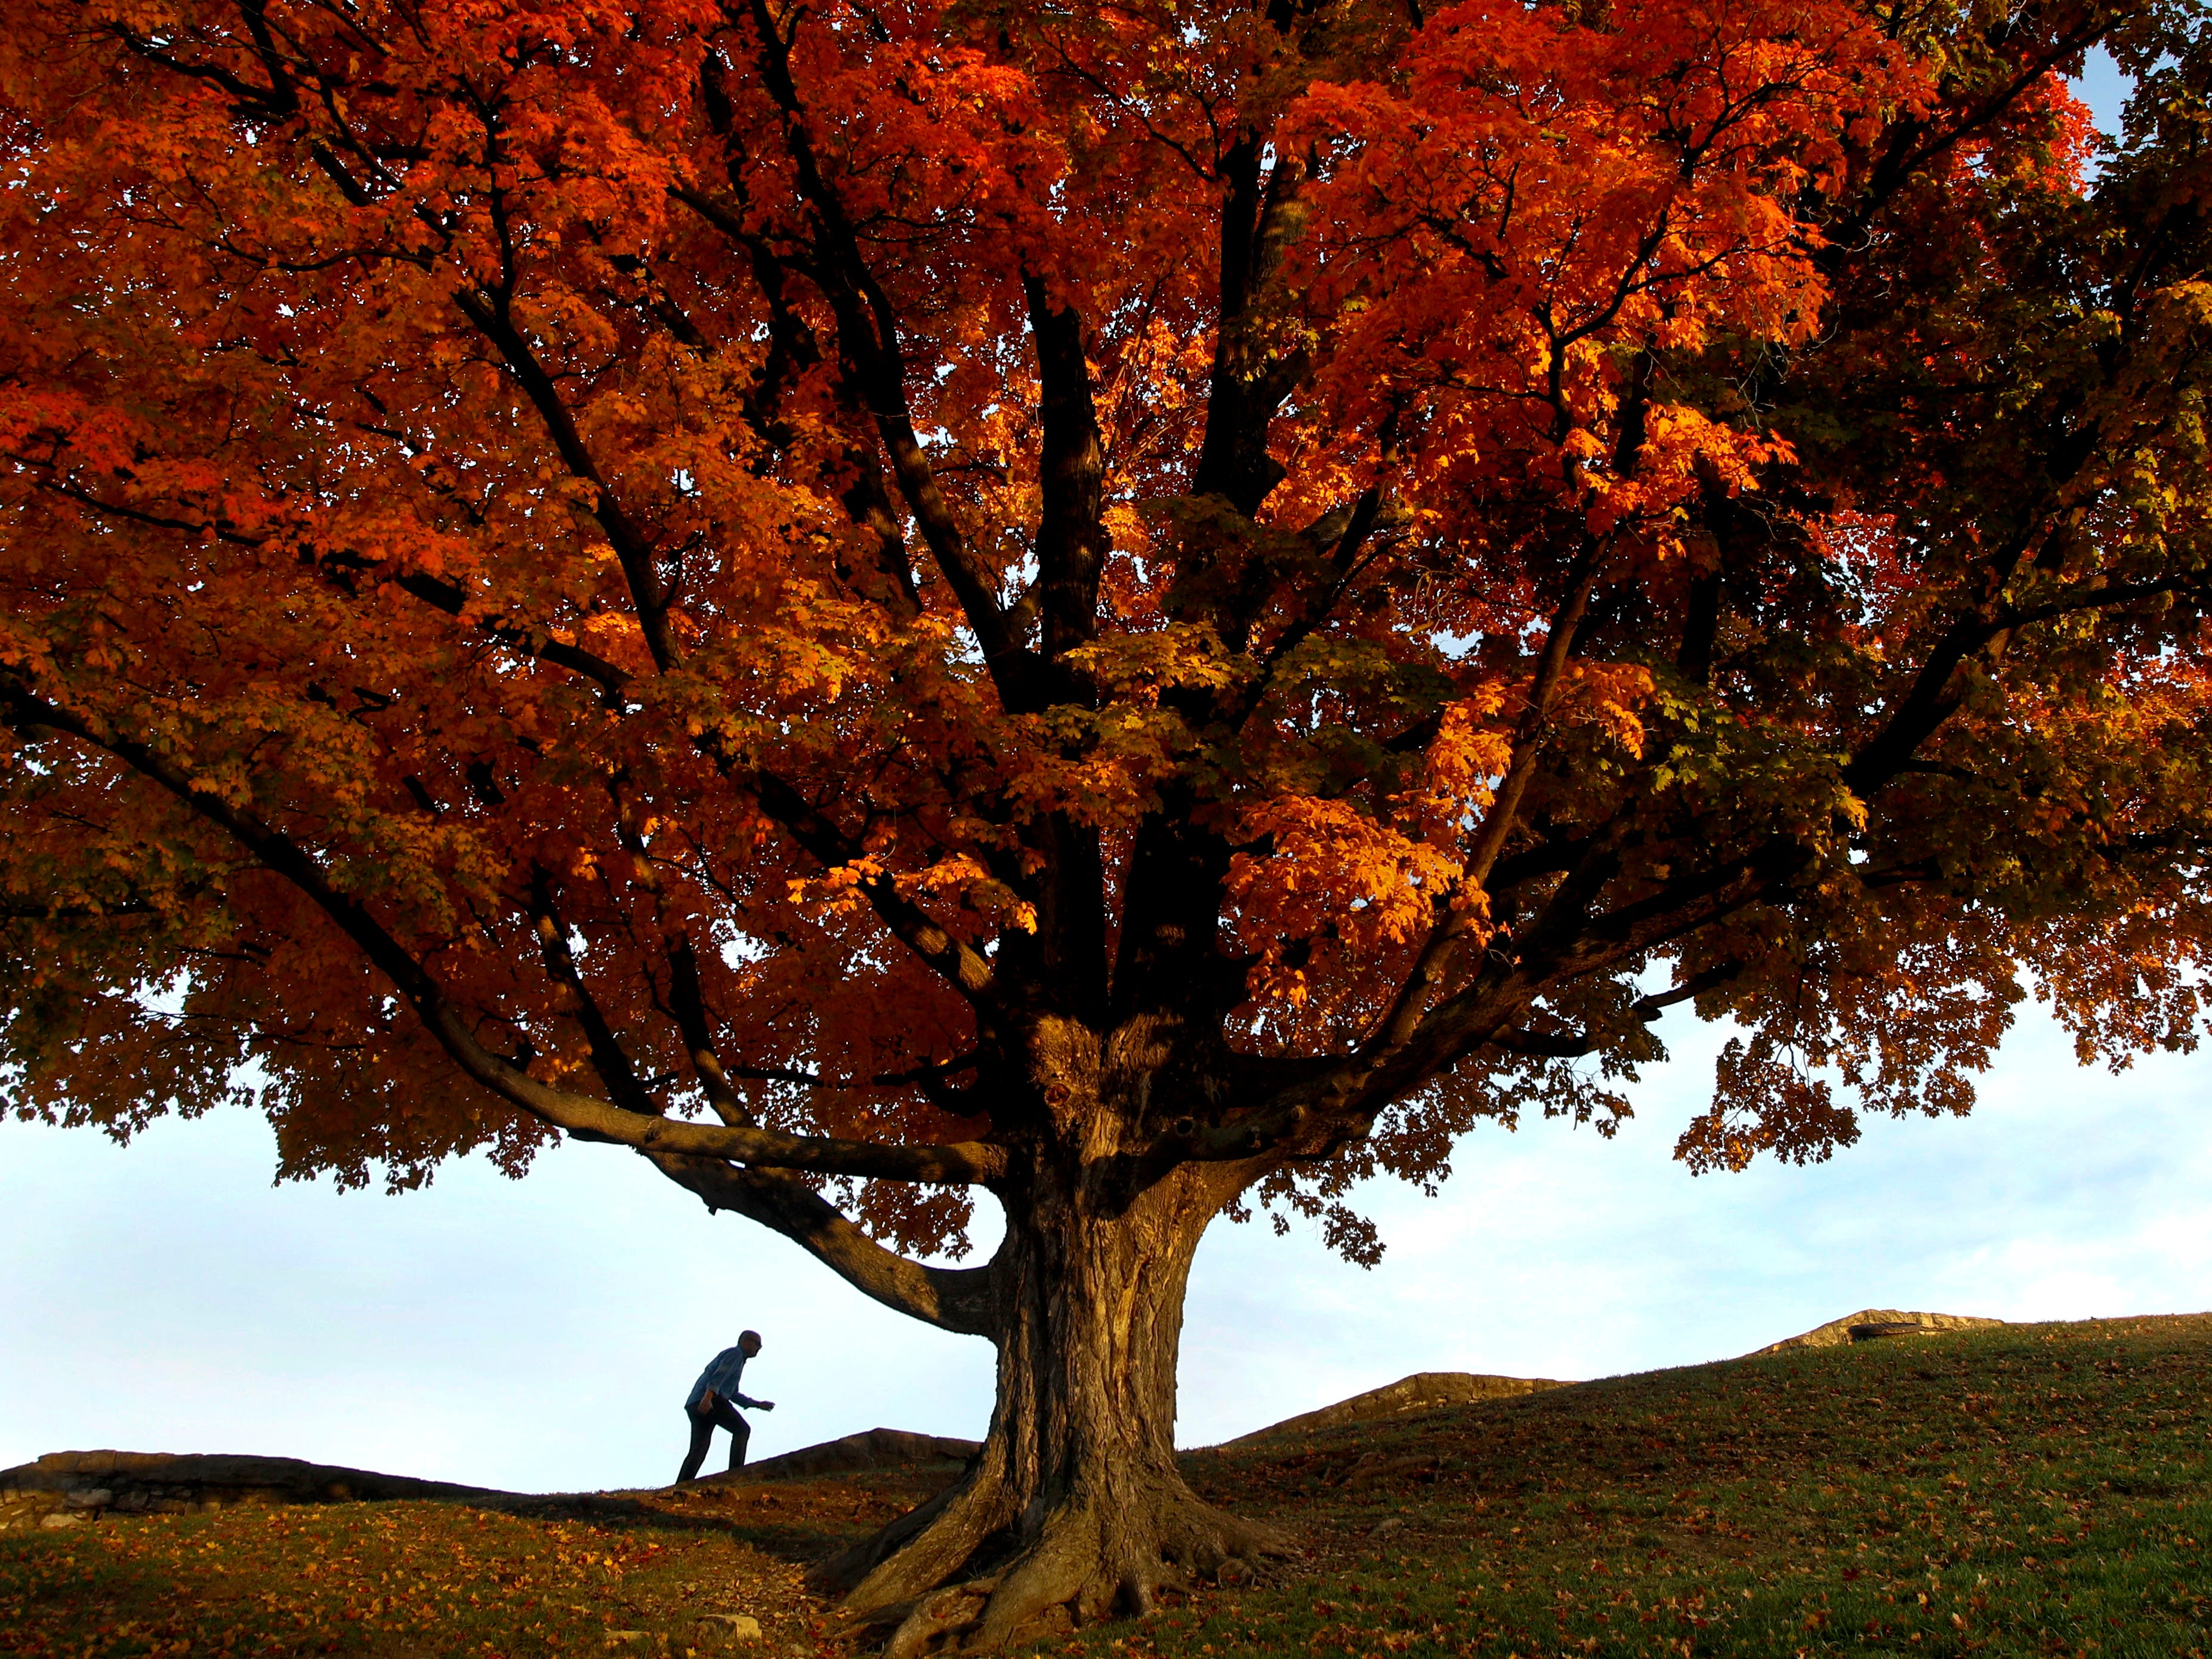 A man walks by an oak tree displaying fall colors on the grounds of the National World War I Museum, Monday, Oct. 29, 2018, in Kansas City, Mo.